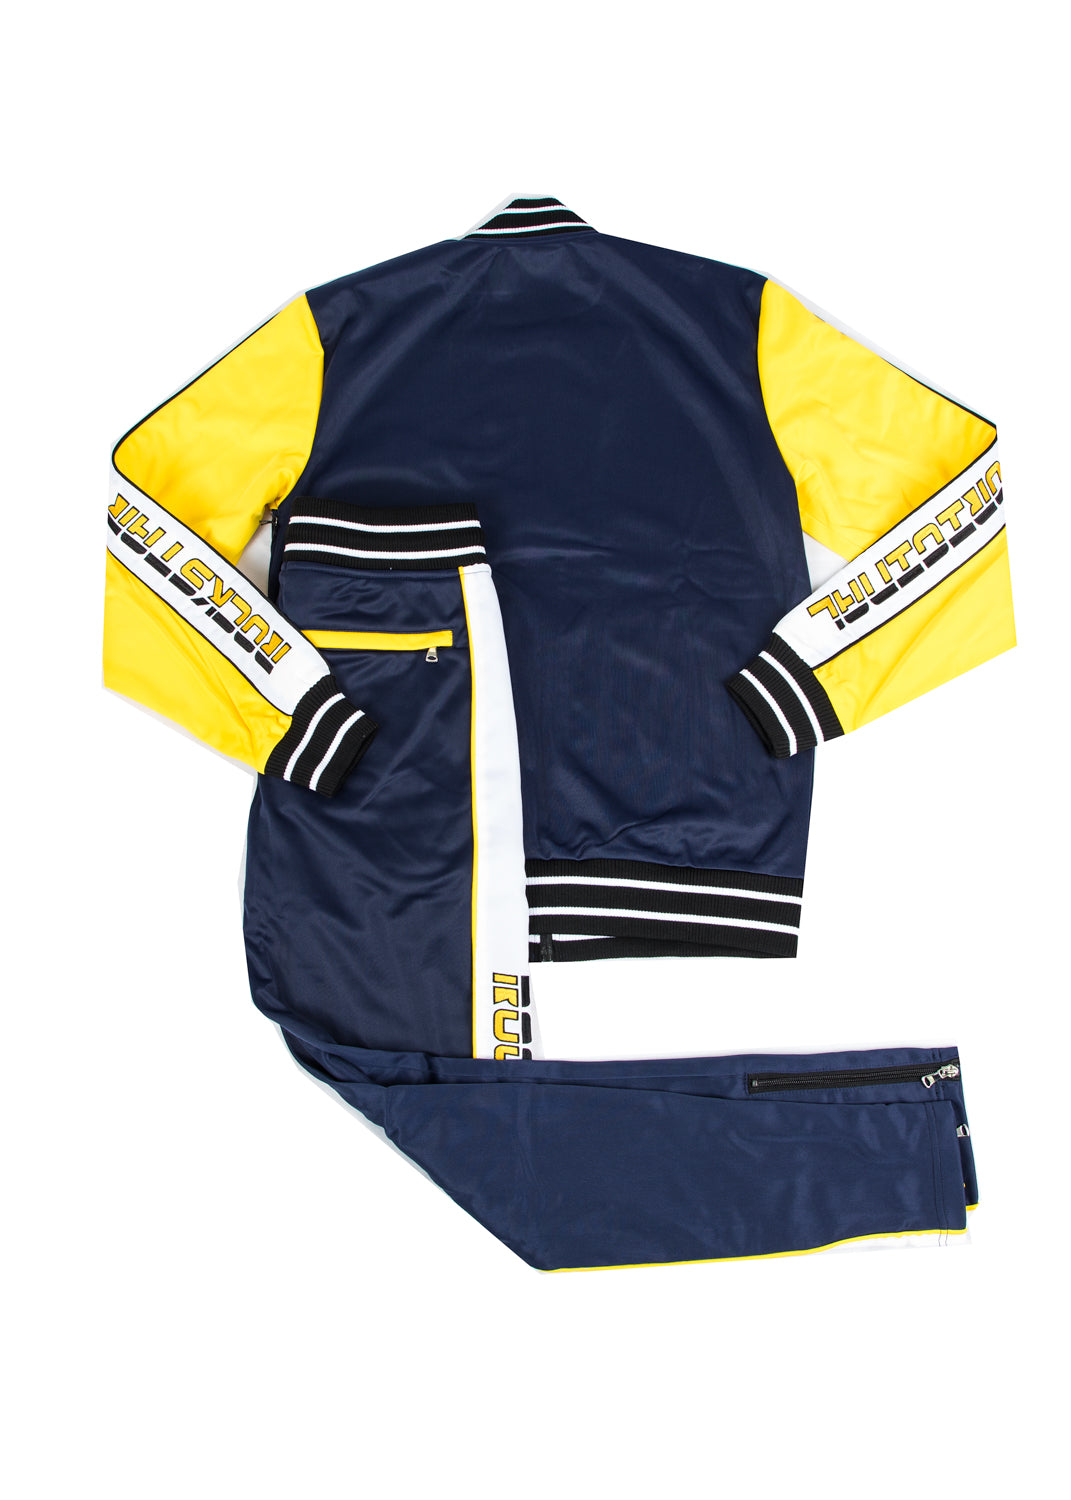 Beck 4.0 (Yellow) Track Suit